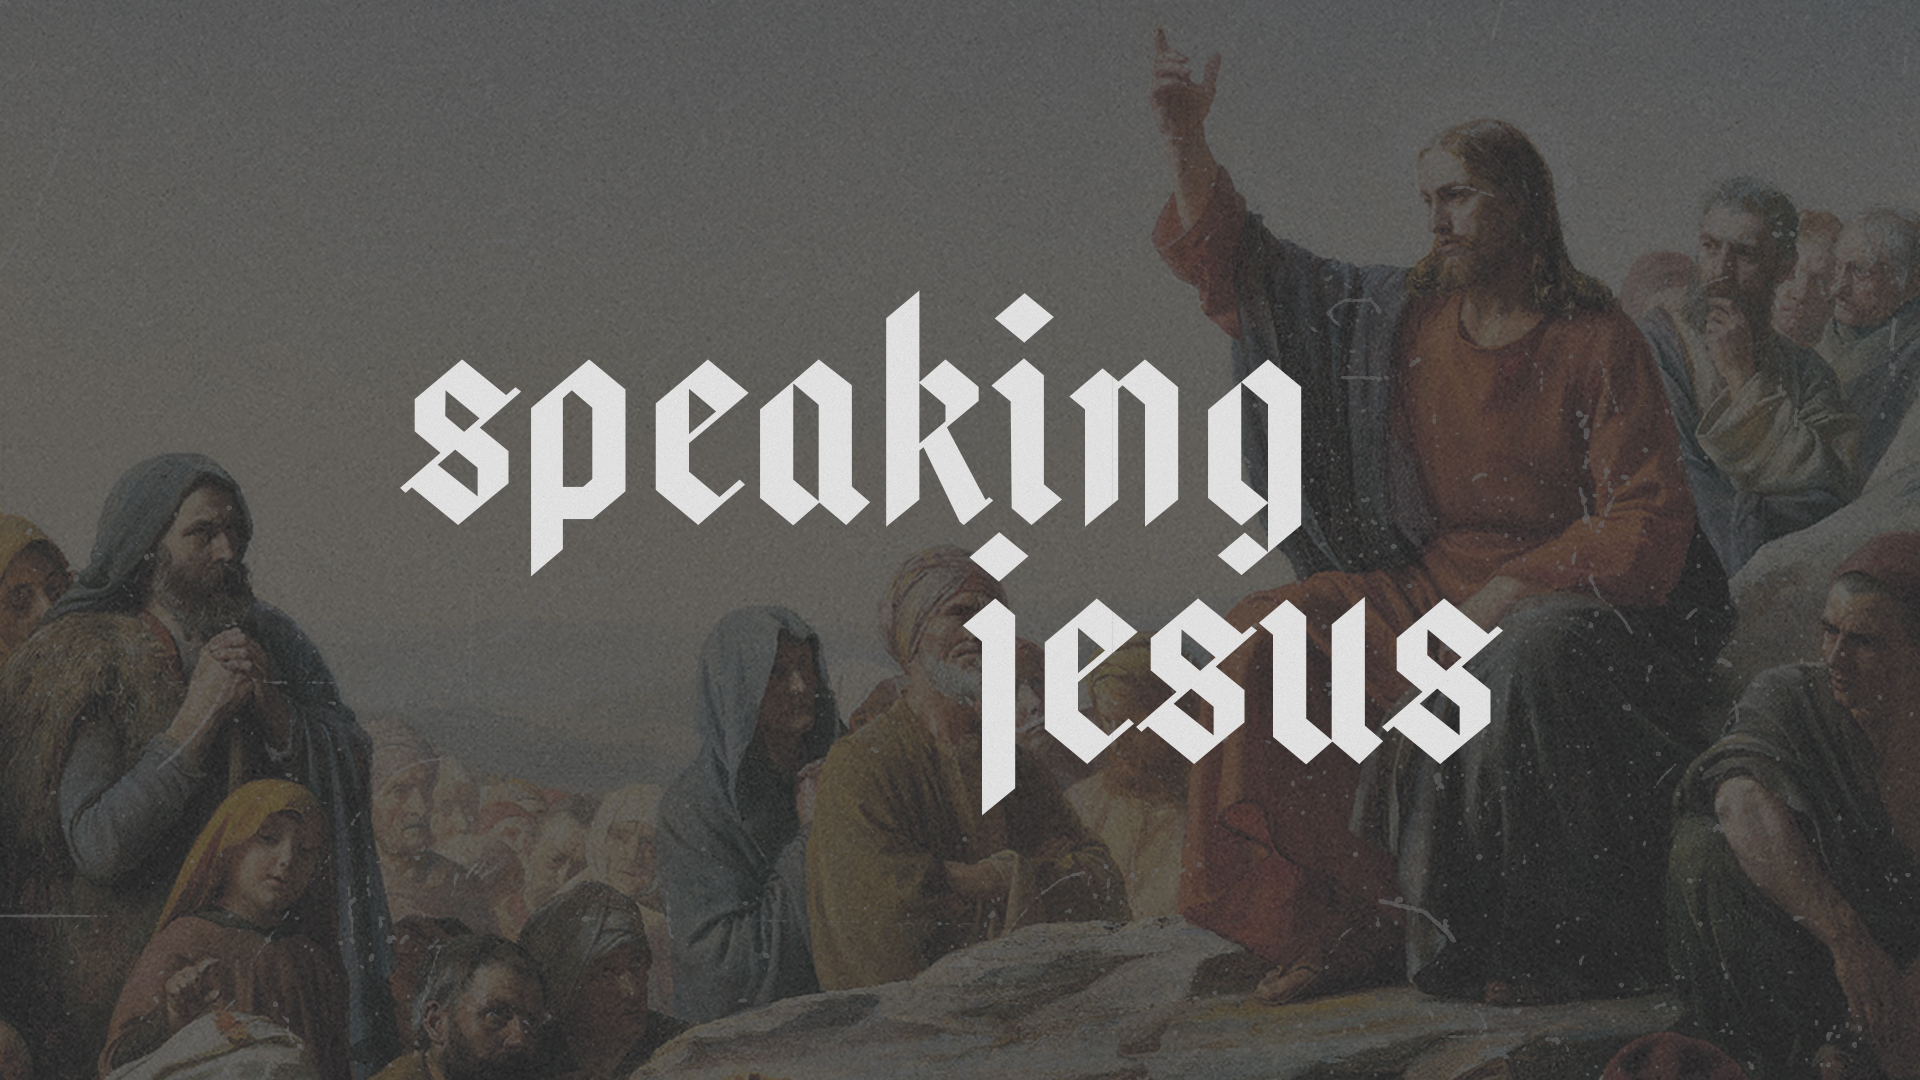 speakingjesus.jpg